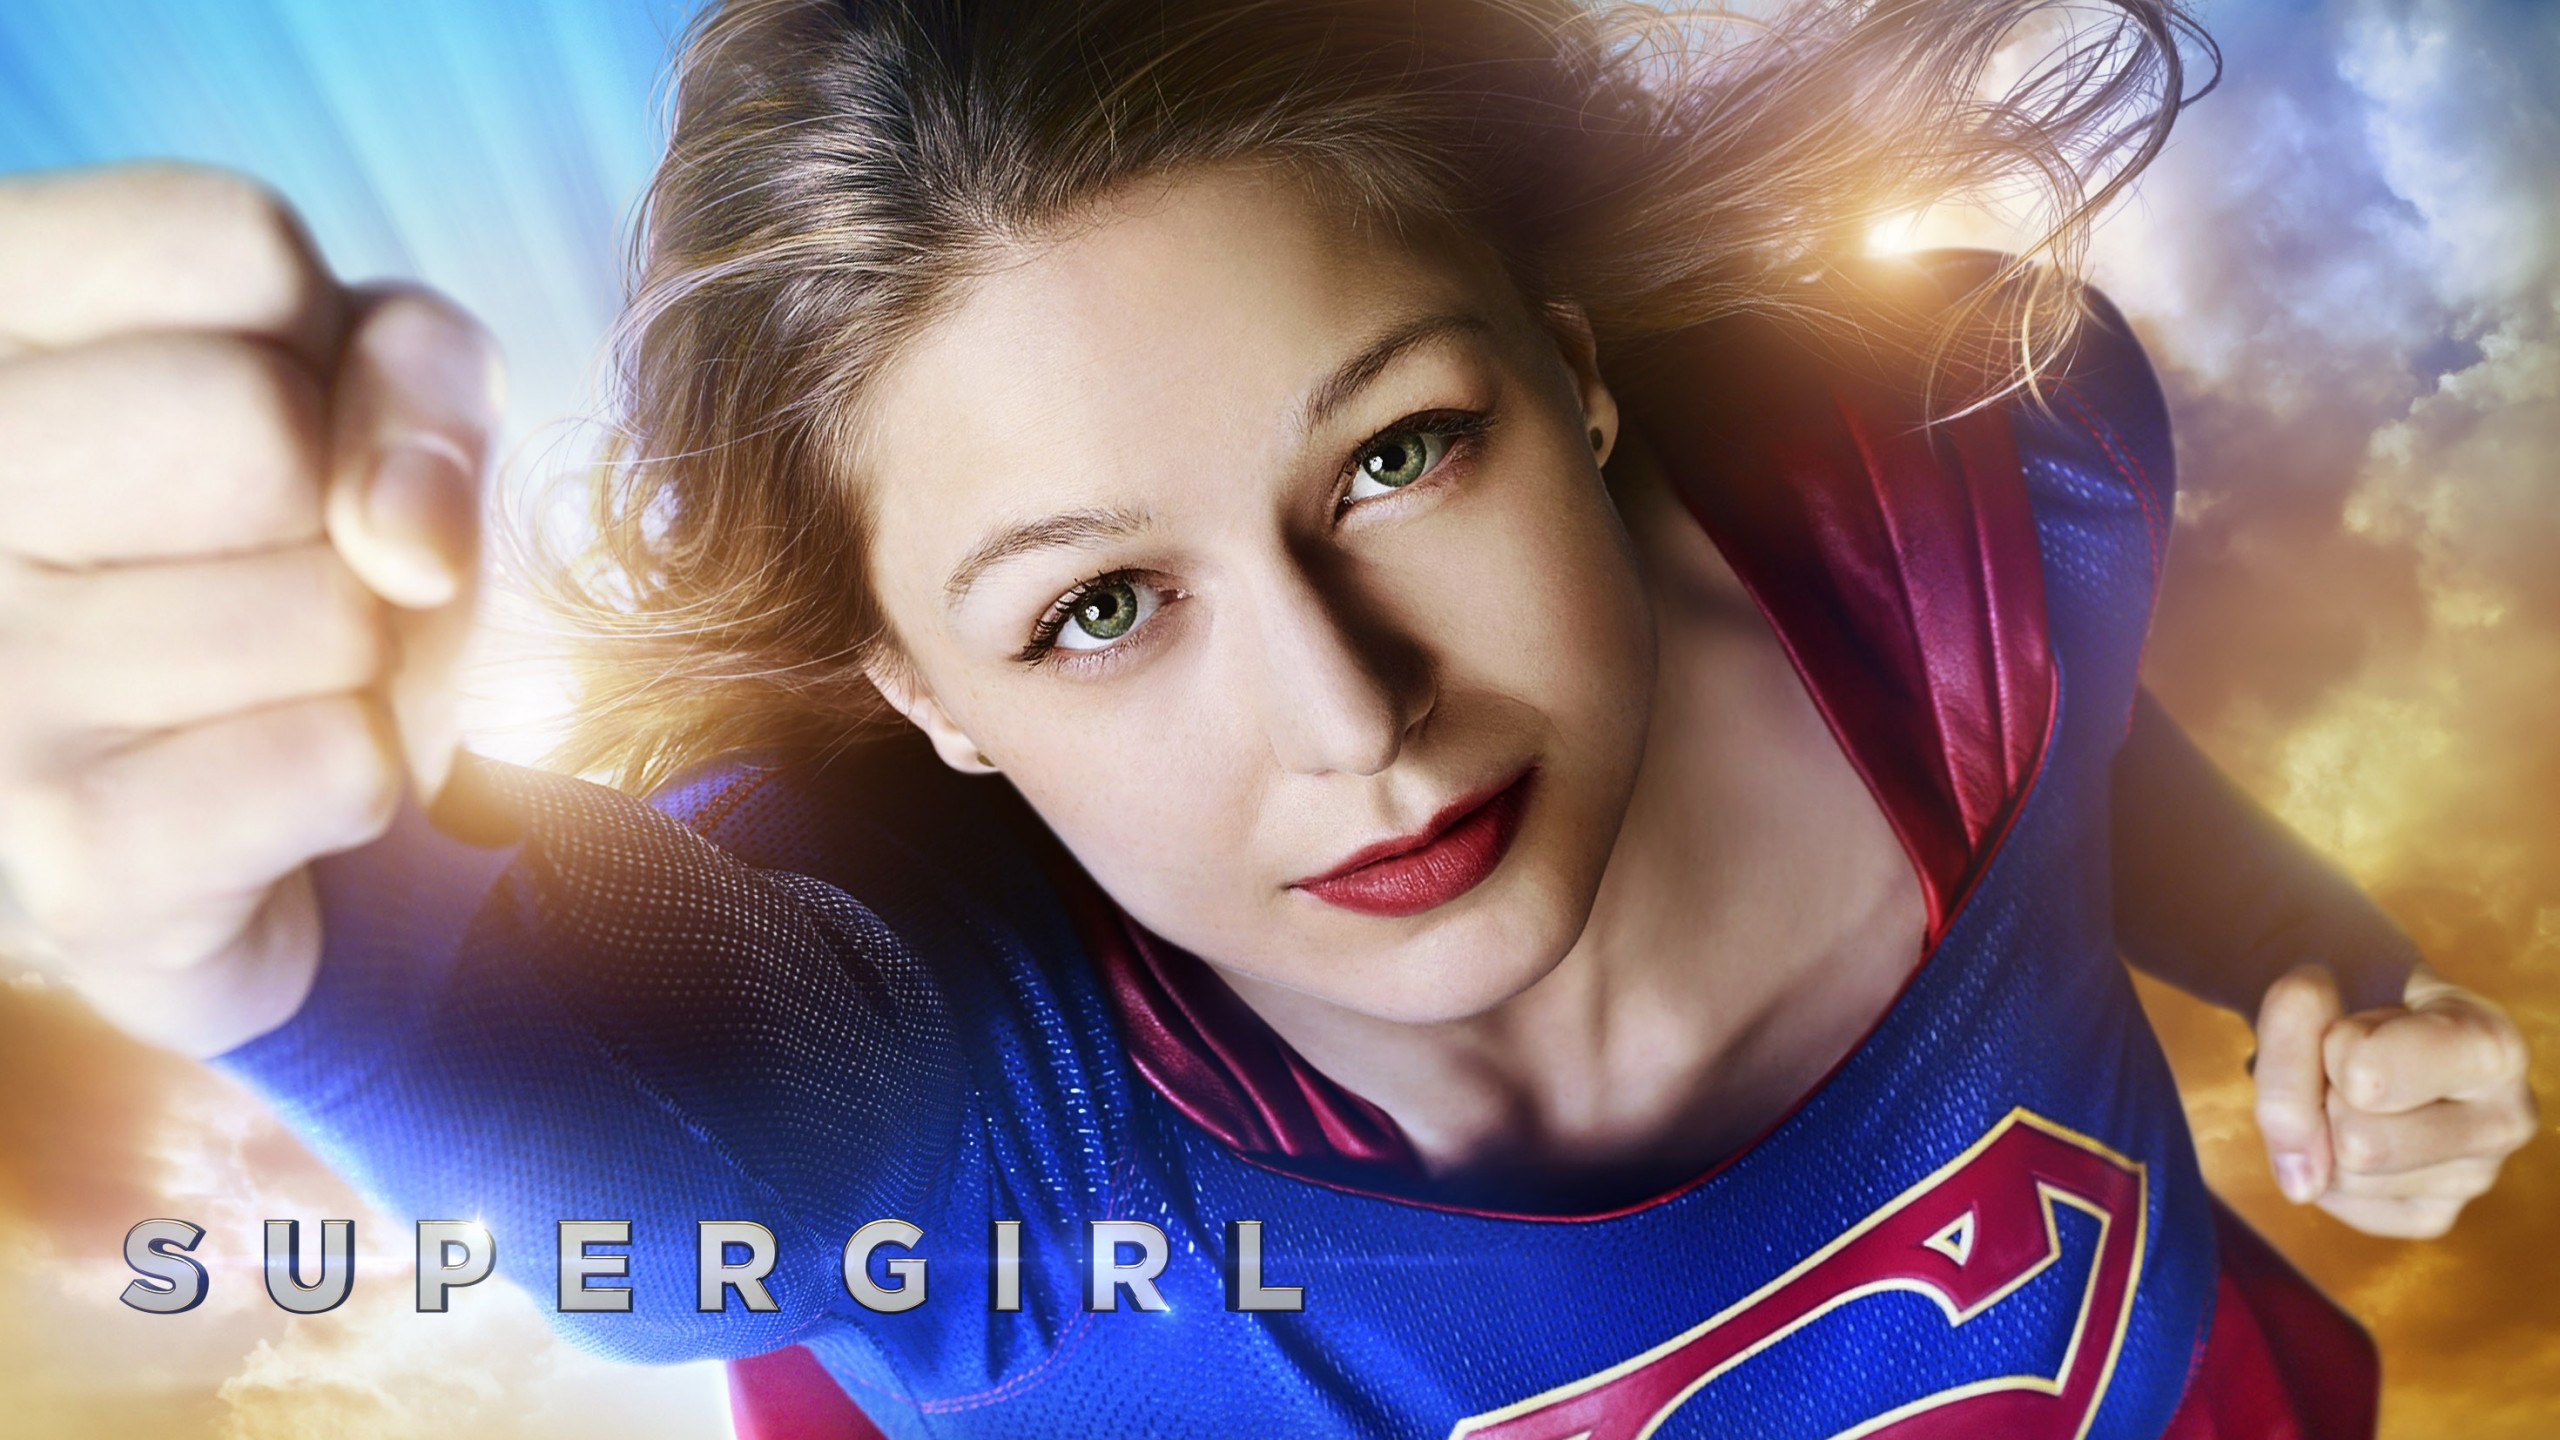 free download supergirl wallpaper